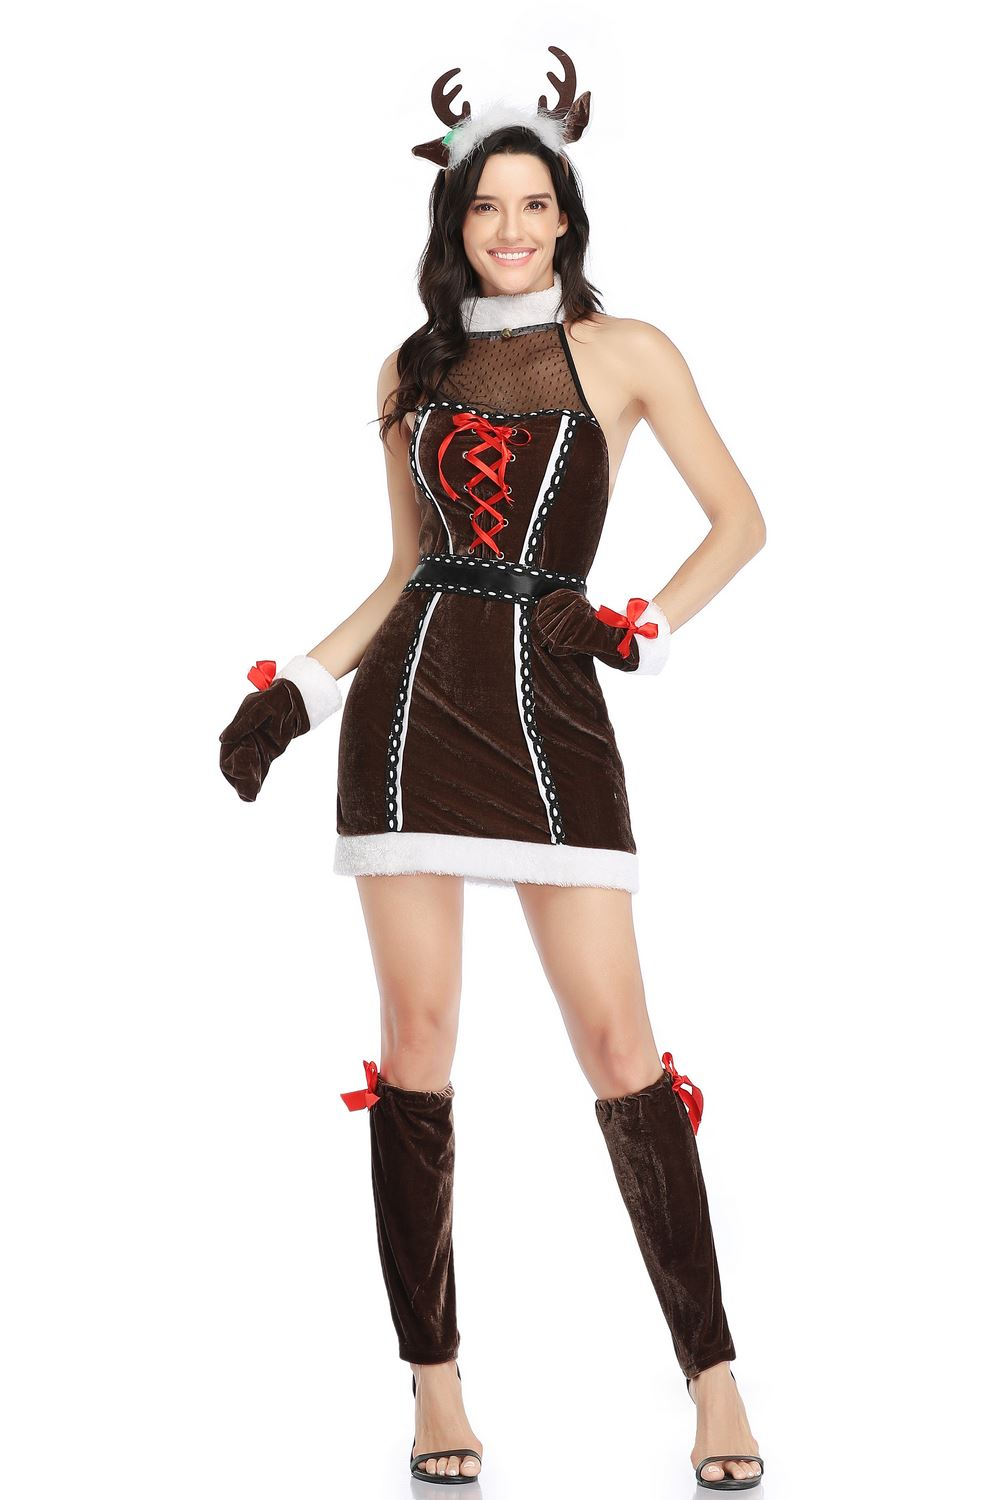 <font><b>Sexy</b></font> Xmas Santa <font><b>Costume</b></font> Womens Ladies Adult Deer <font><b>Christmas</b></font> Fancy Dress Helper <font><b>Outfit</b></font> M-XL SM1937 image